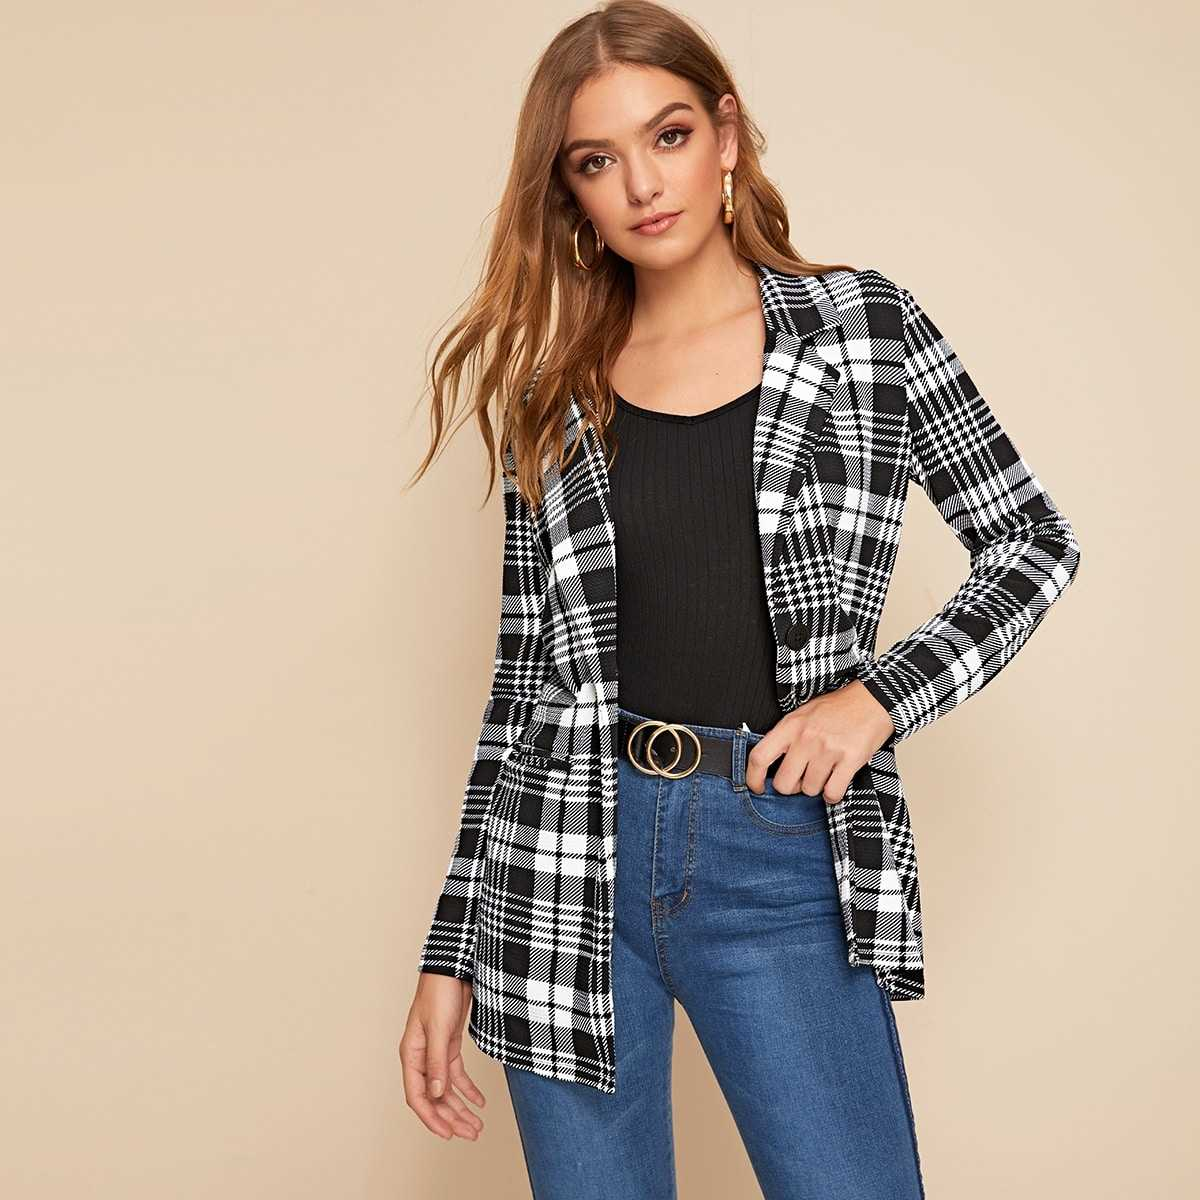 Single Buttoned Notched Collar Plaid Blazer in Black and White by ROMWE on GOOFASH